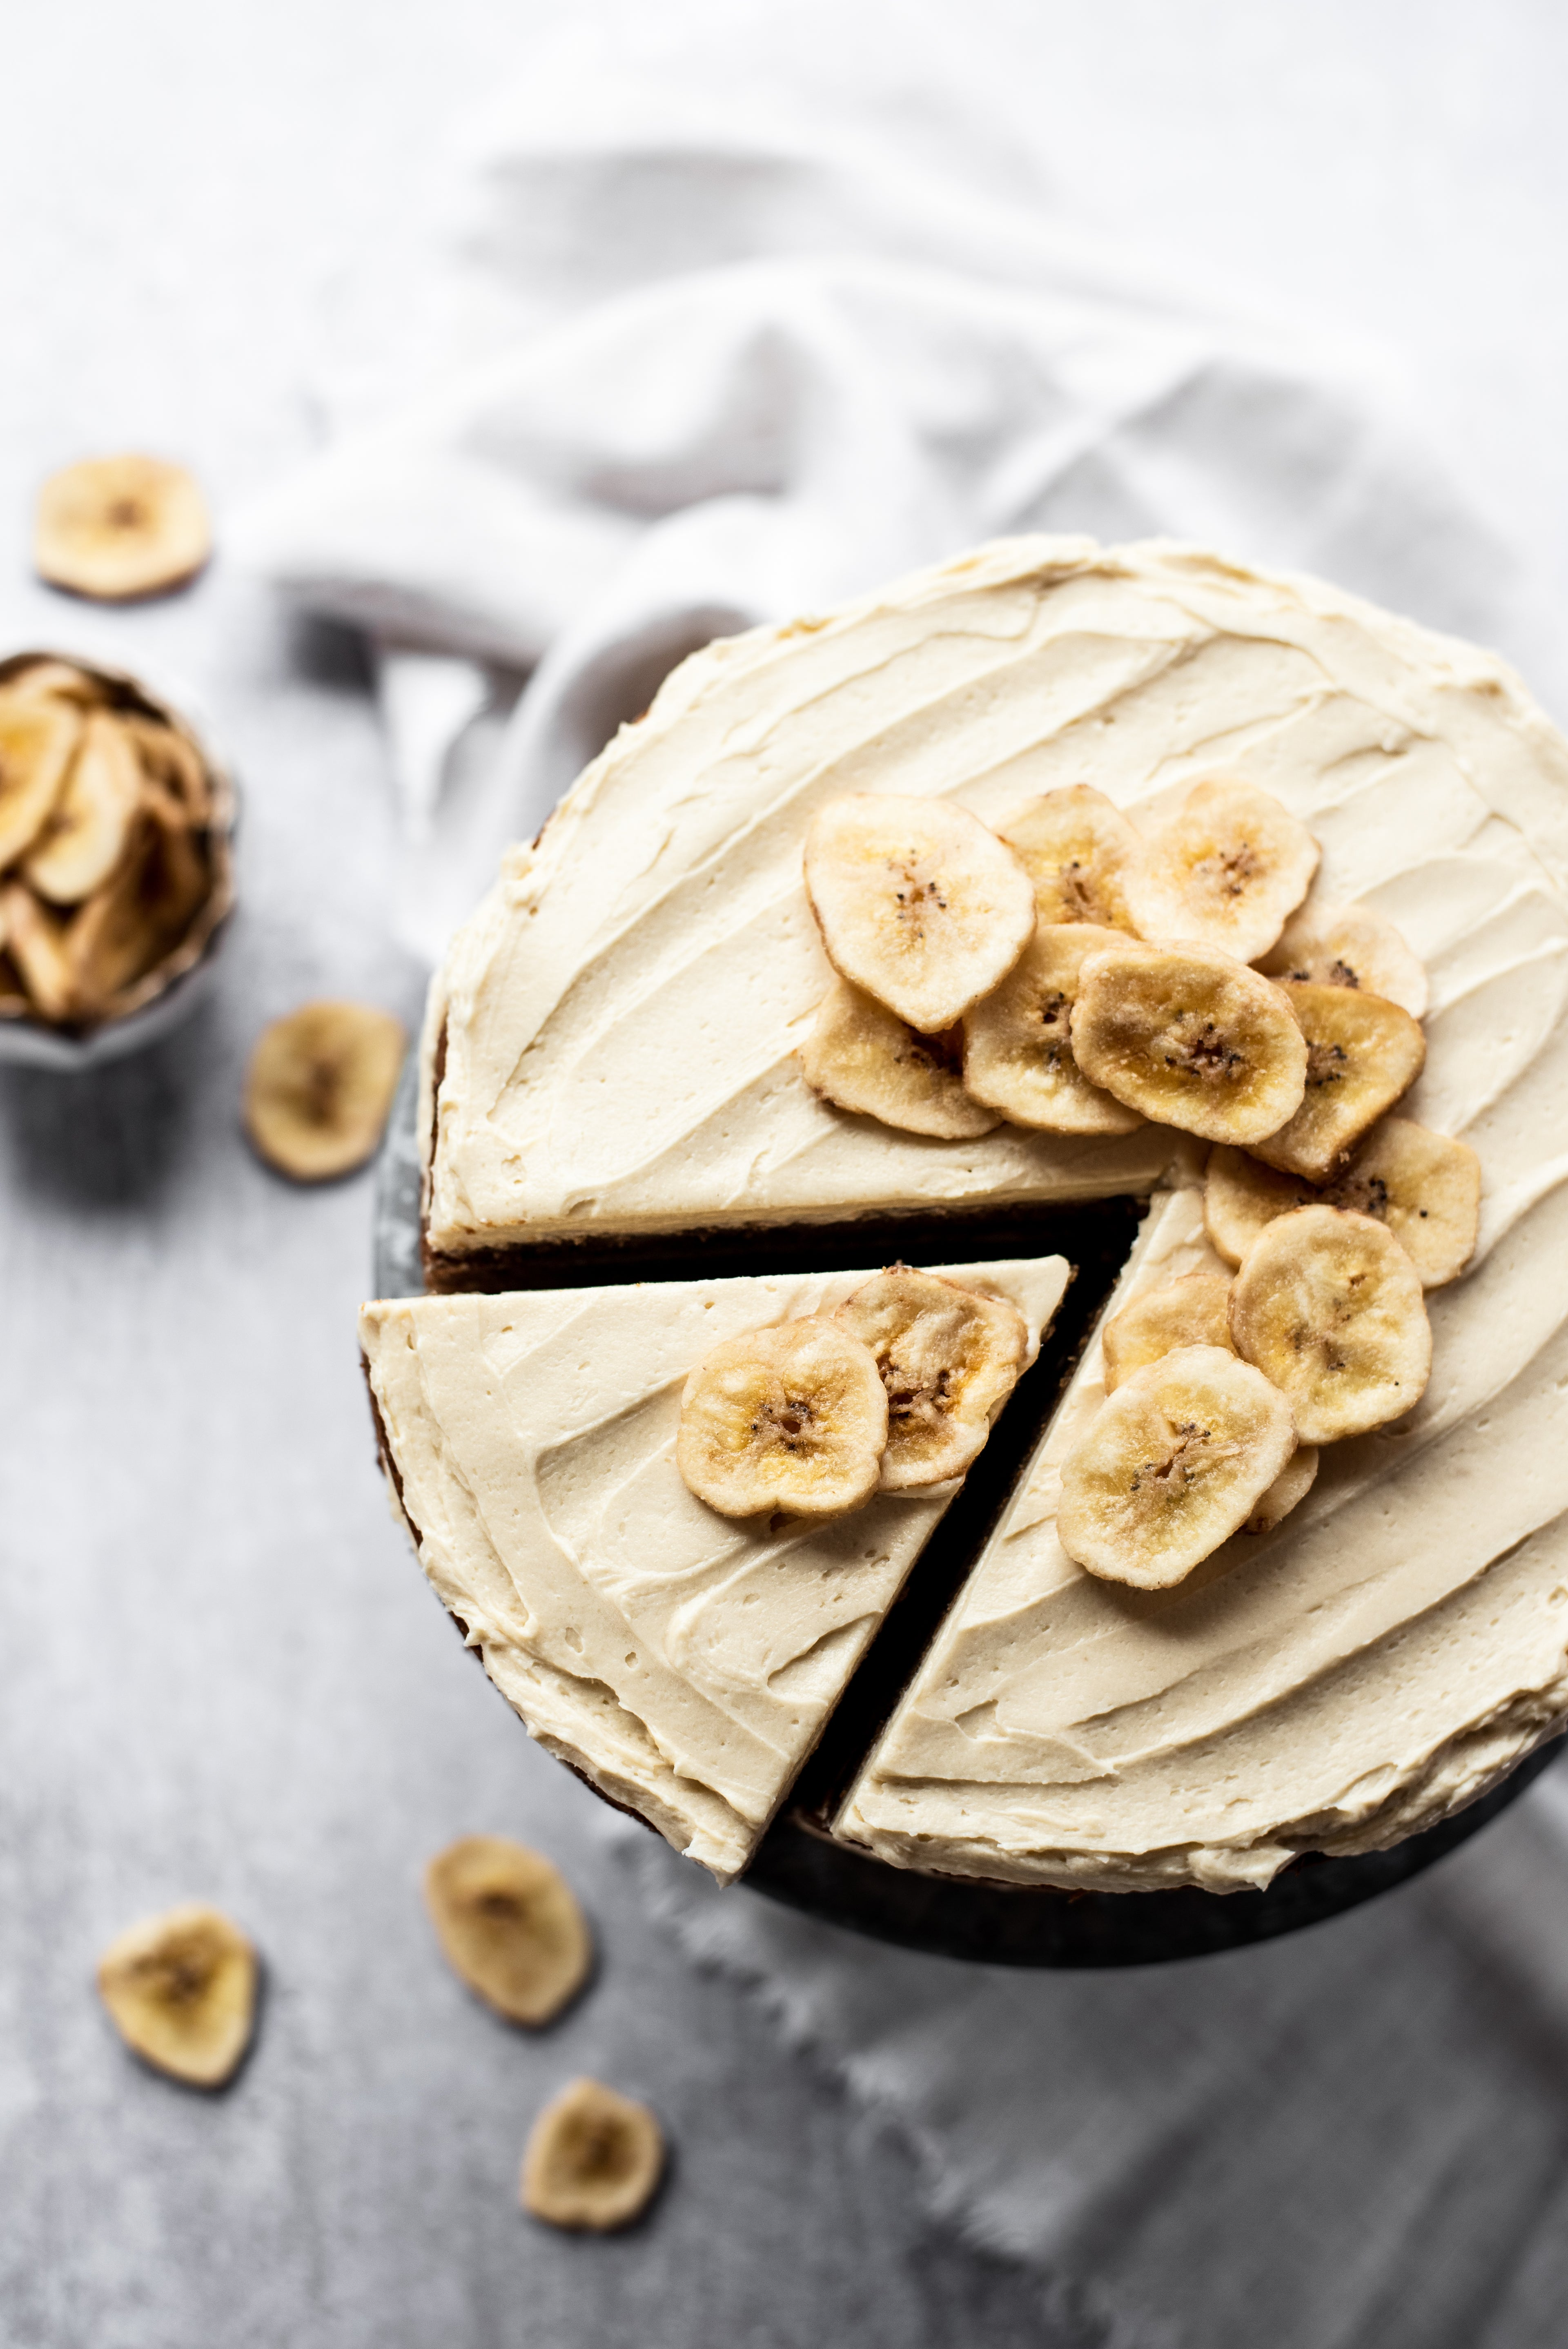 Top down image of banana layer cake with slice cut and topped with banana chips